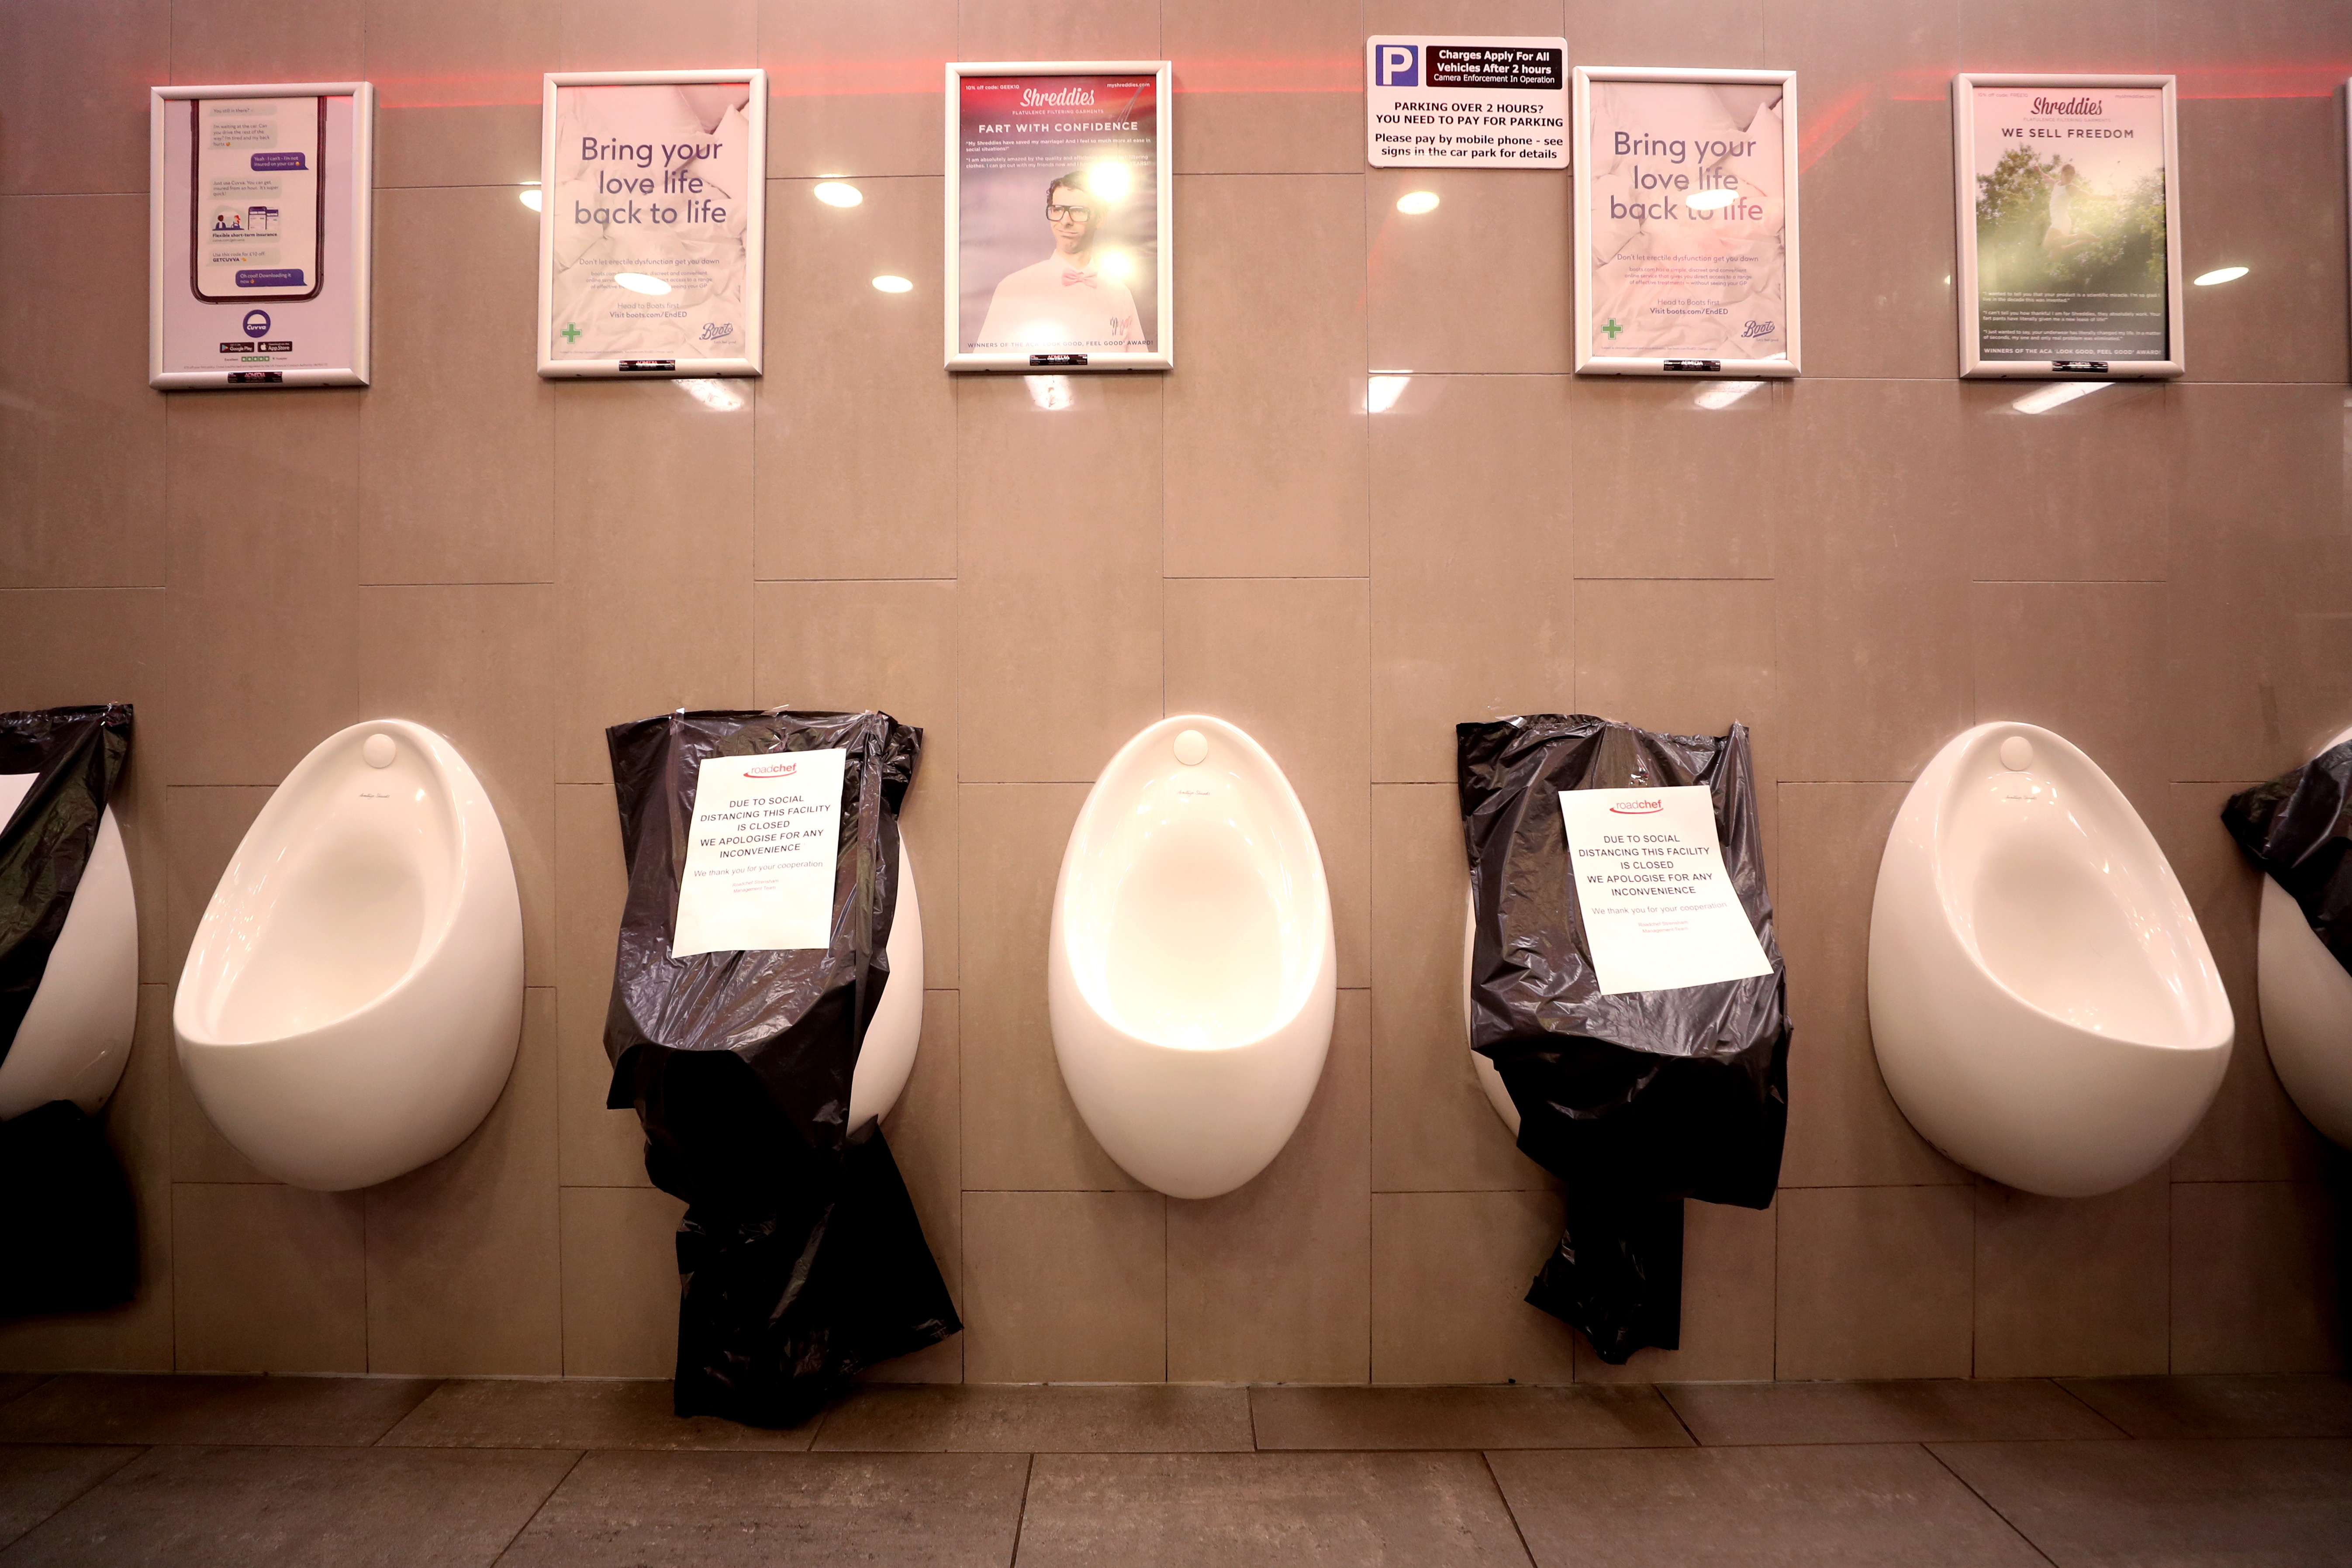 The Men's toilet facilities at the Strensham Services in Worcestershire where alternate urinals are out of use to maintain social distancing as the UK continues in lockdown to help curb the spread of the coronavirus.